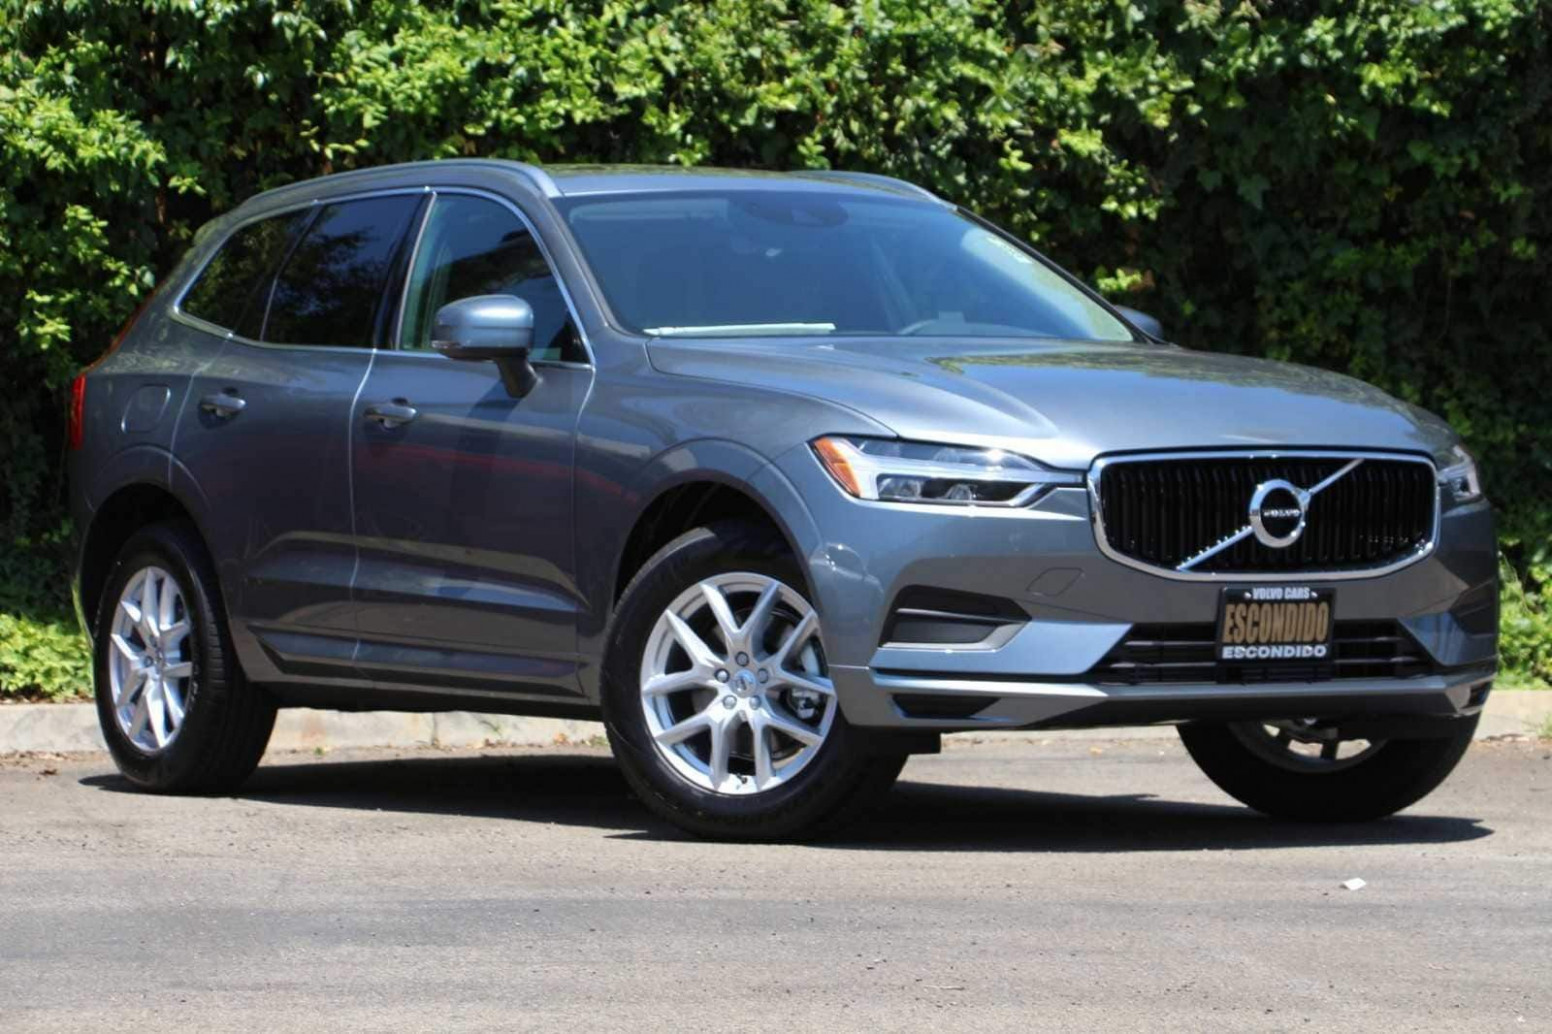 7 volvo xc7 lease questions New Review 7*7 - 7 volvo ...